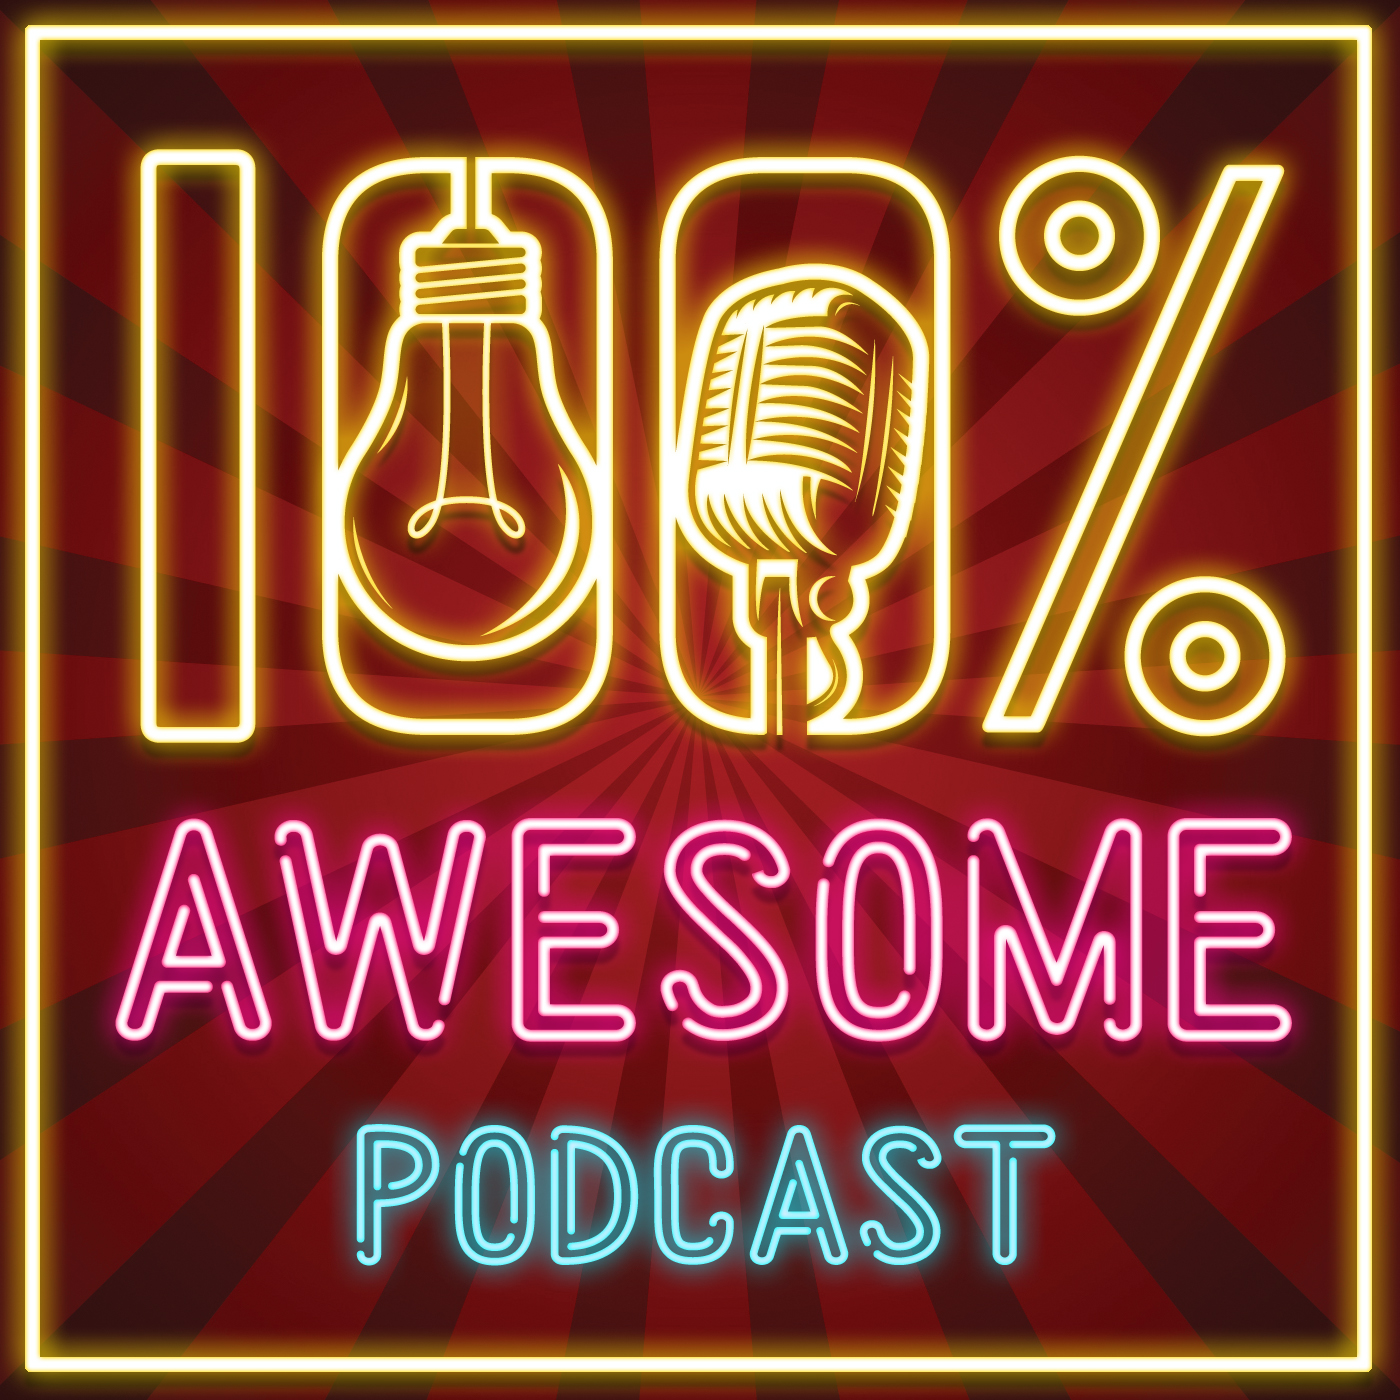 100% Awesome Podcast show art